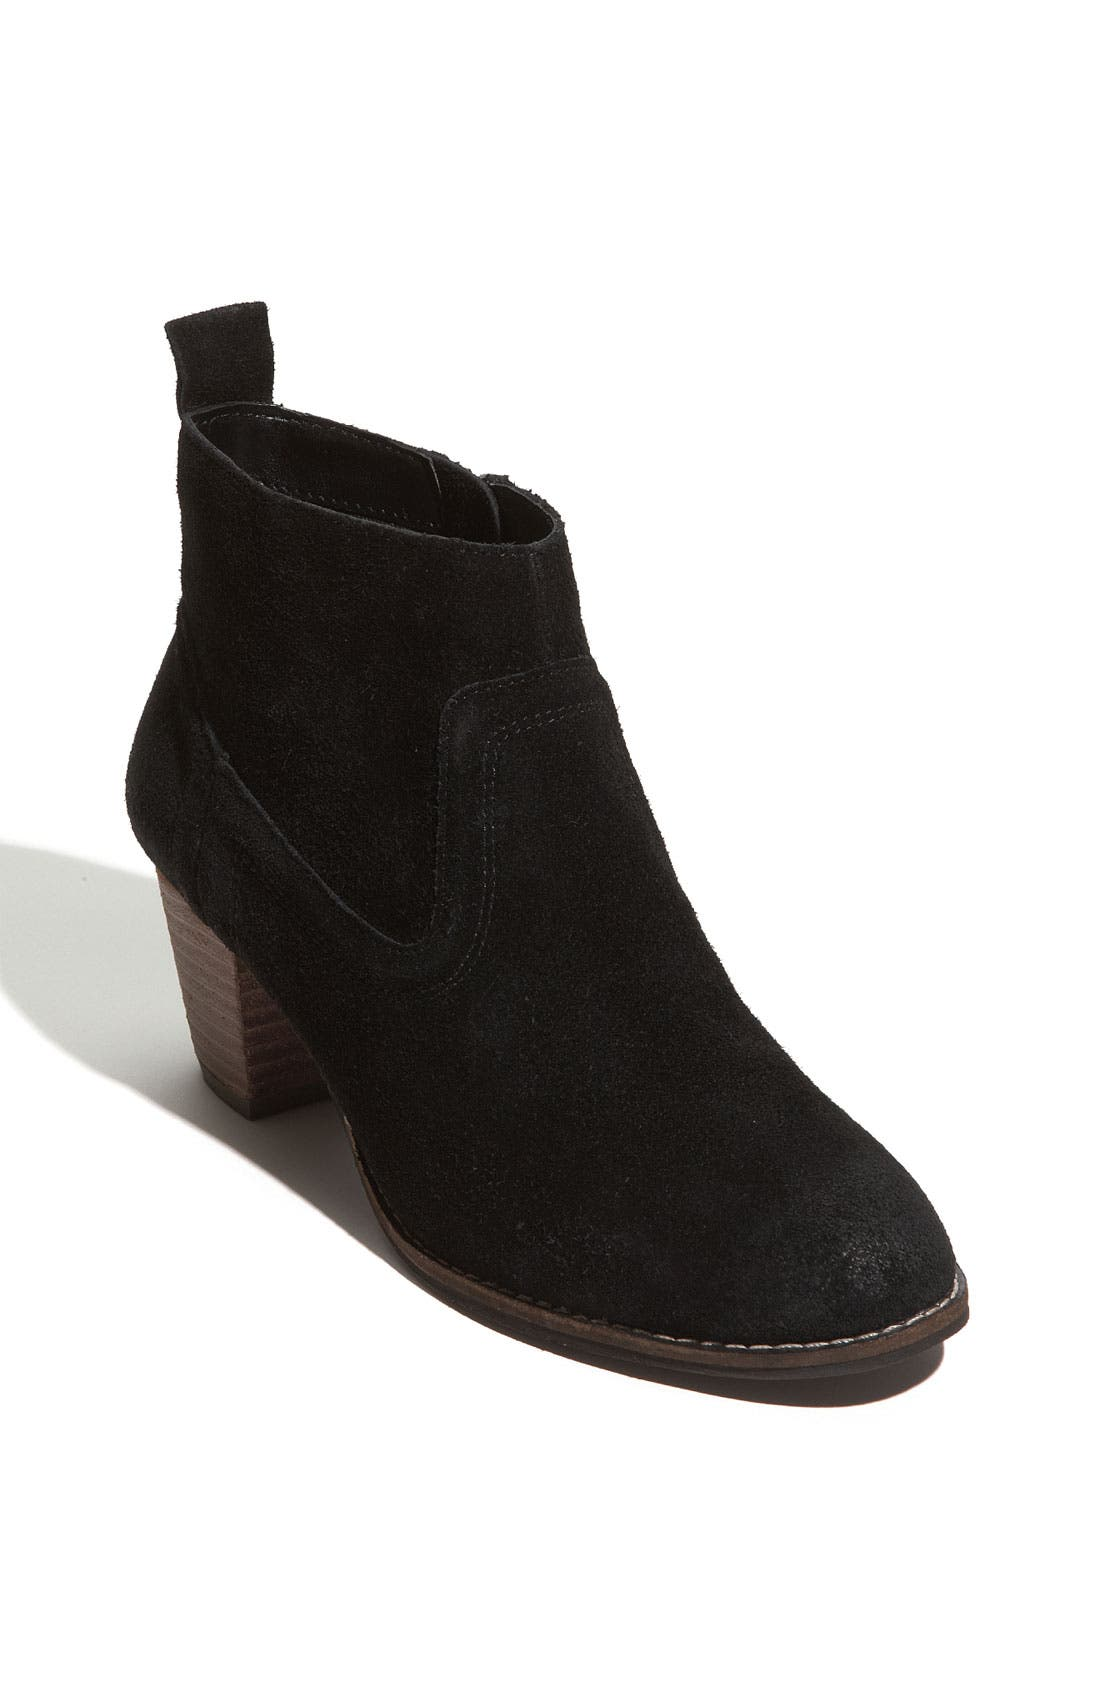 'Jamison' Boot,                             Main thumbnail 1, color,                             001